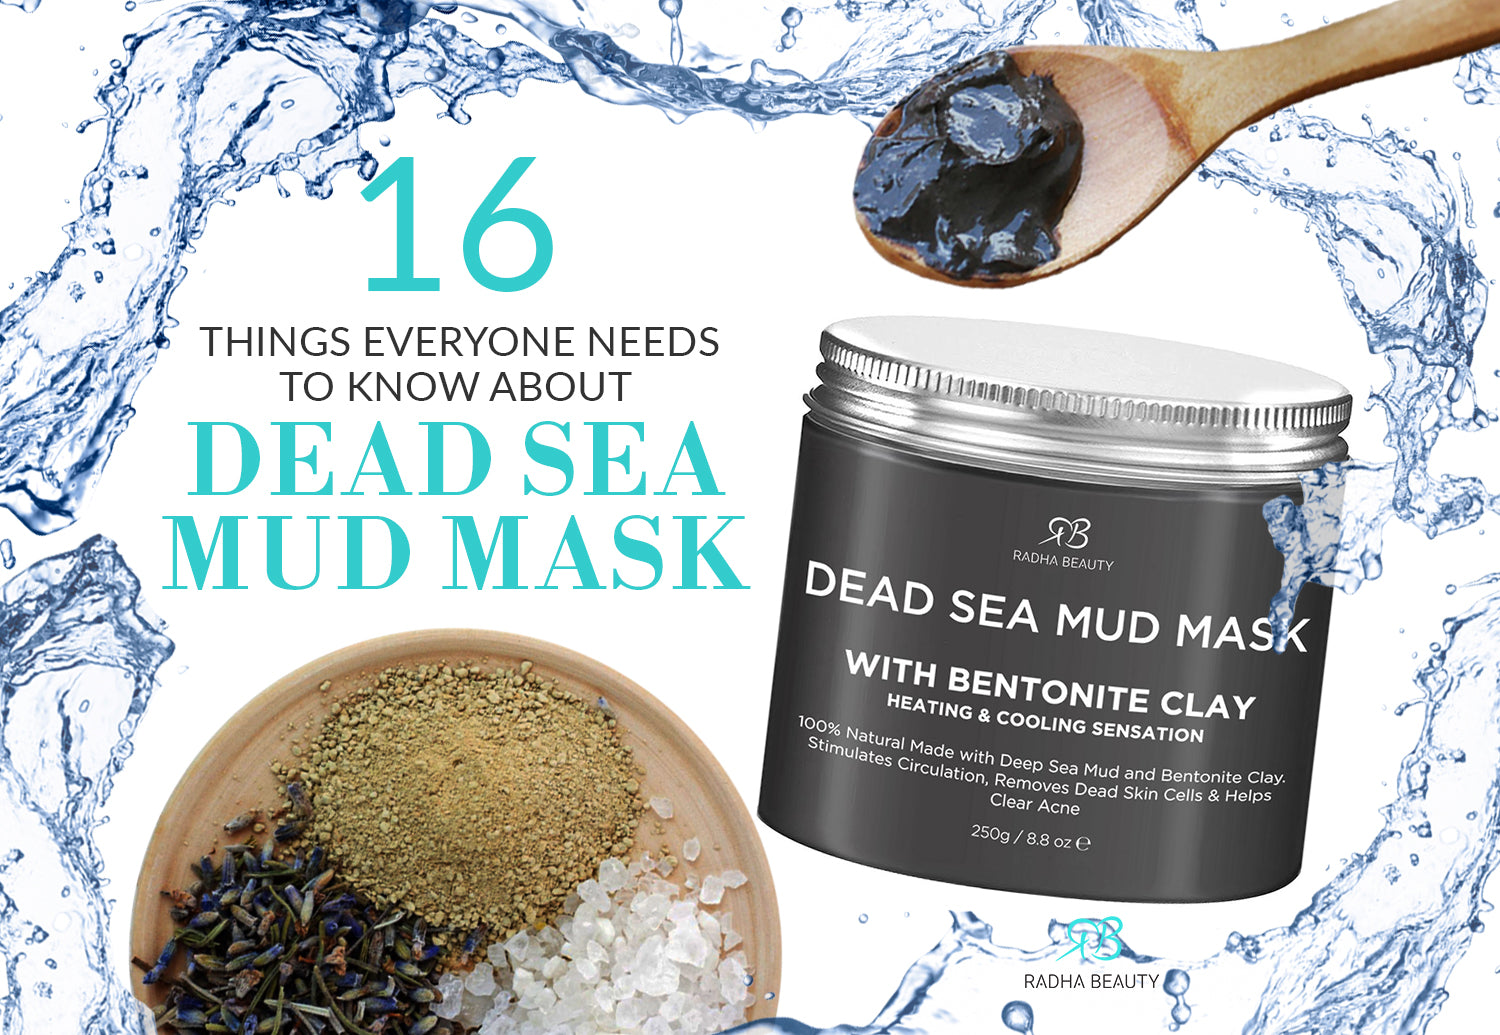 16 Things Everyone Needs To Know About Dead Sea Mud Mask